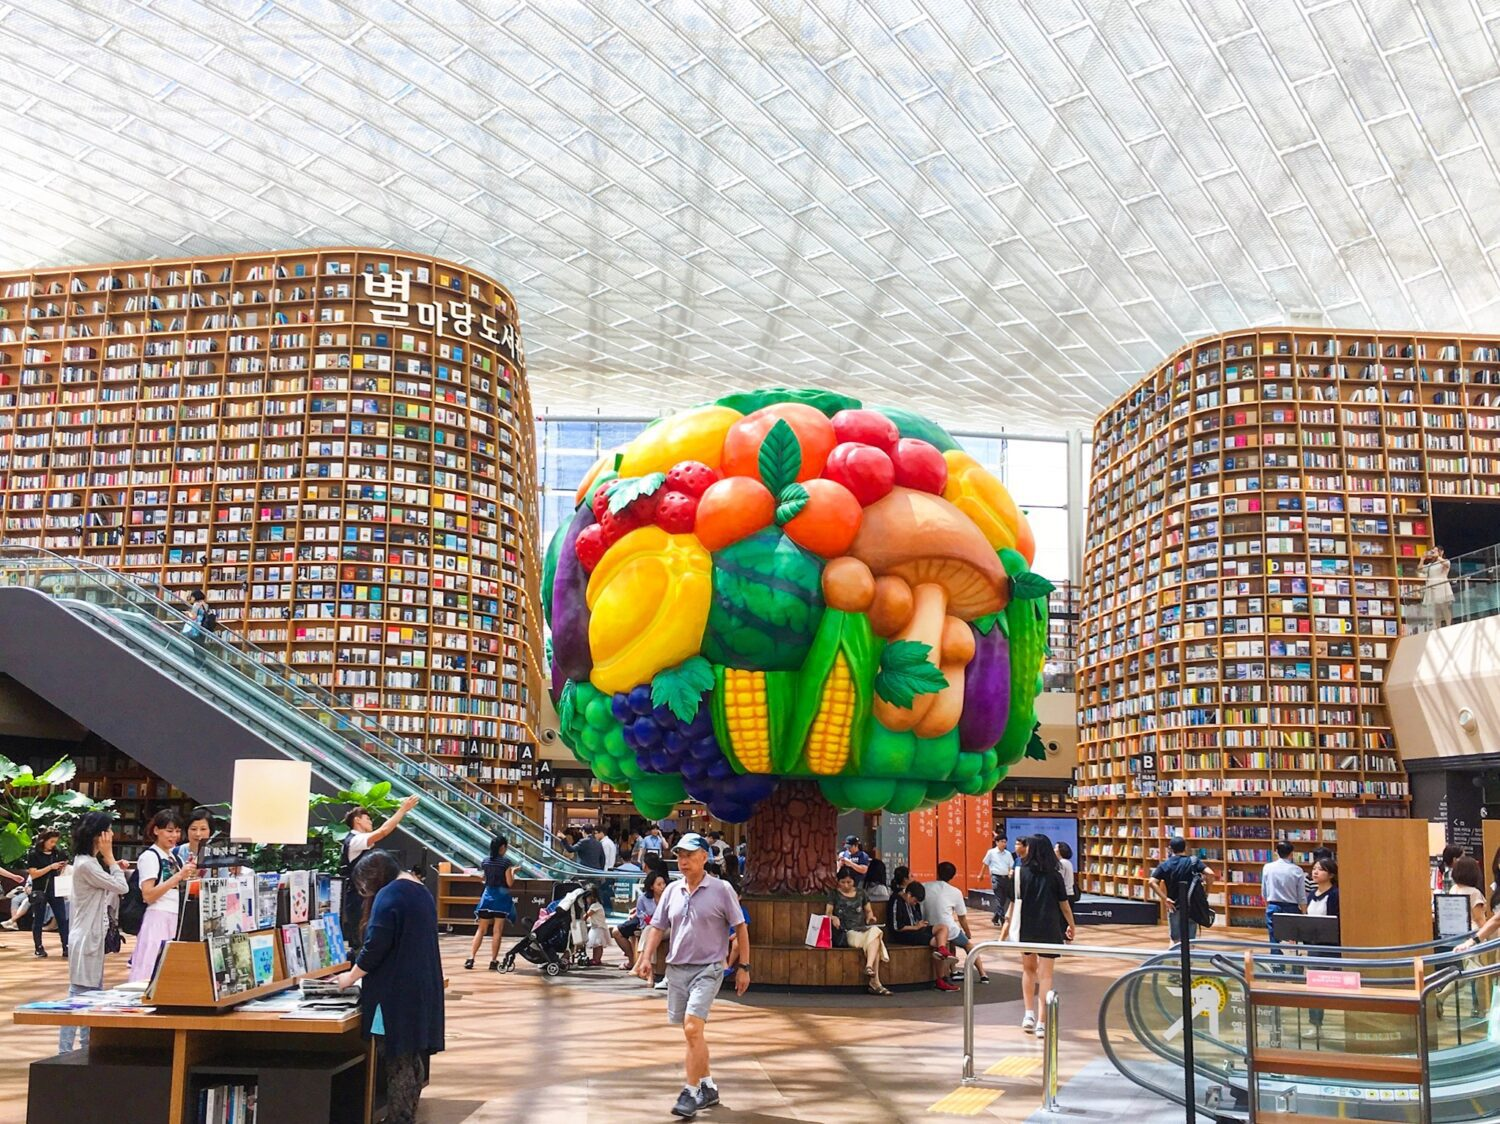 starfield library, starfield coex mall